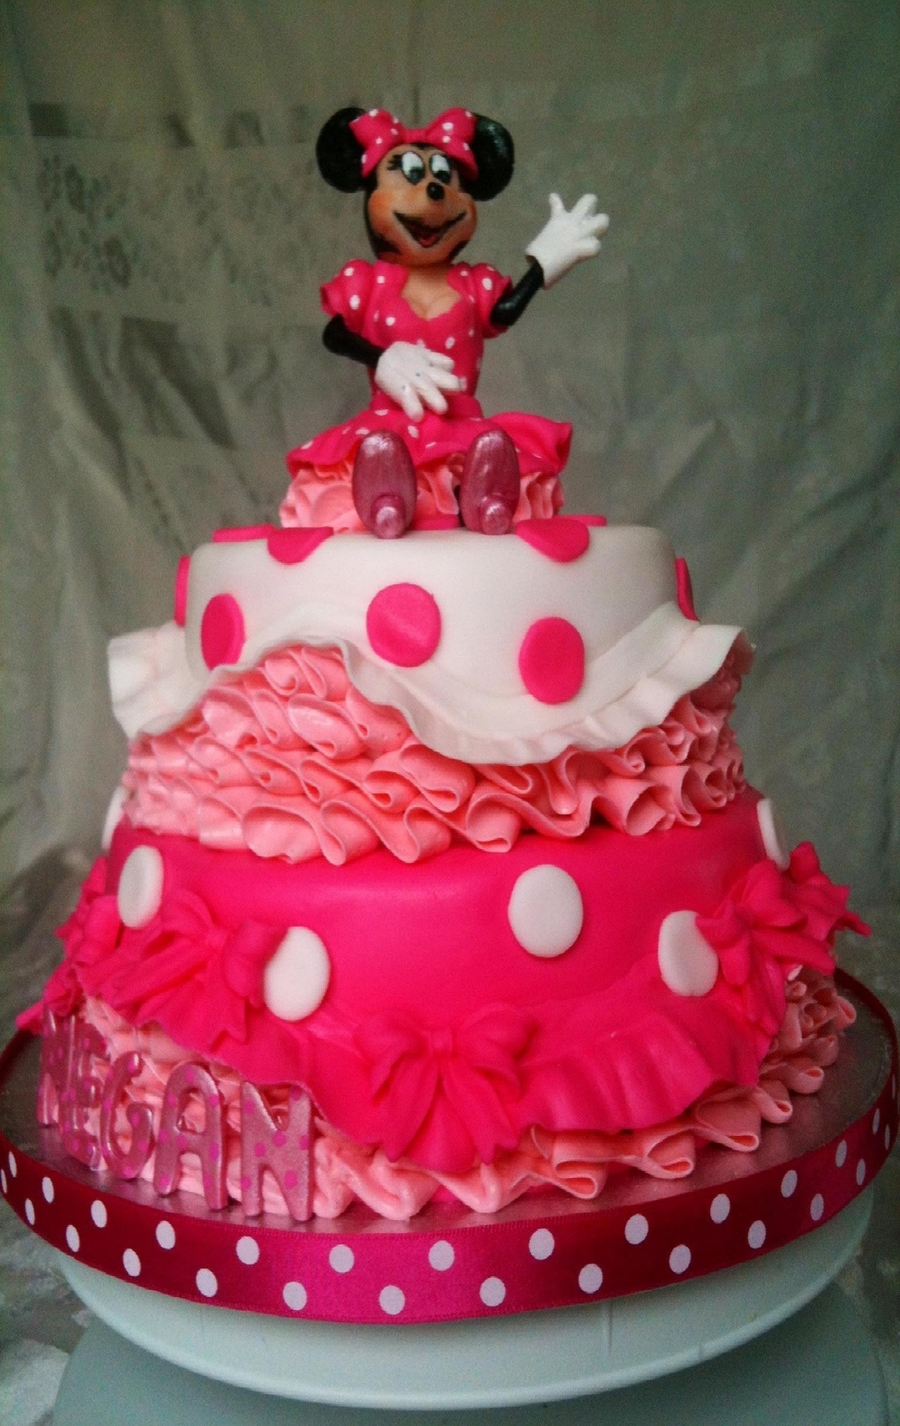 Minnie Mouse Pink Princess Cake Cakecentral Com